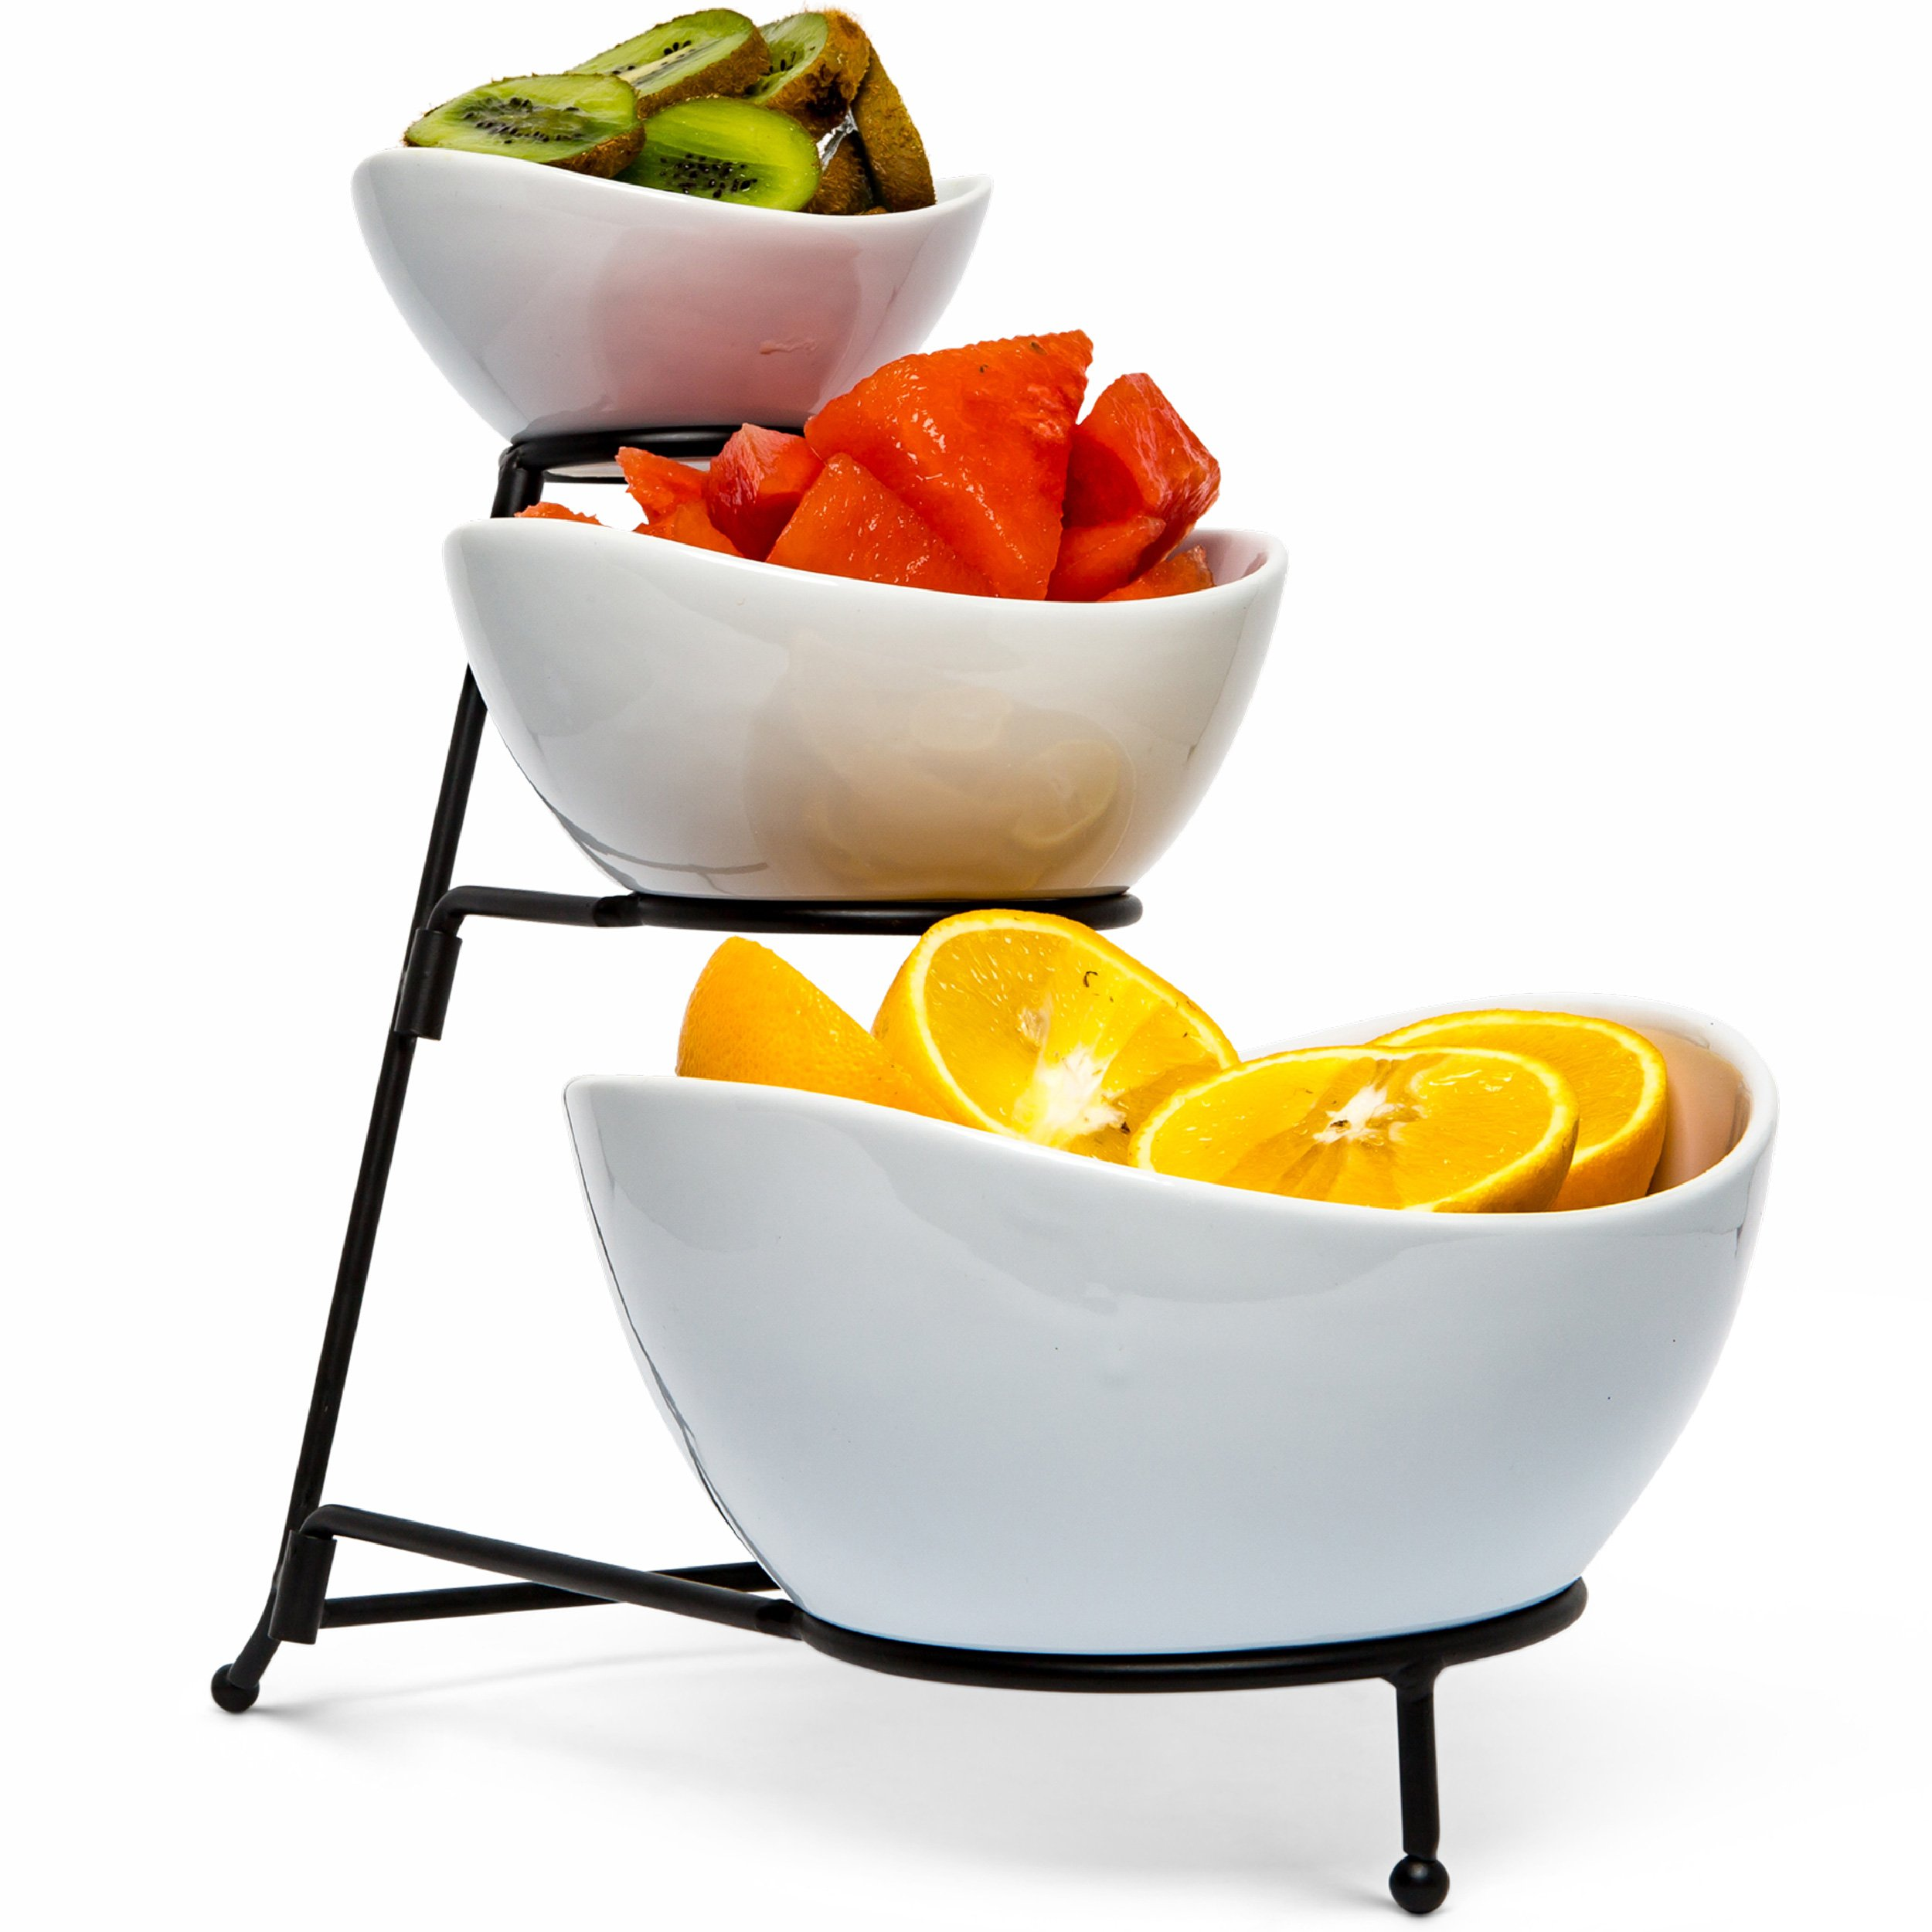 Food Serving Bowl Set: 3 Tier Metal Display Stand with 3 White Stoneware Bowls | Dessert and Snack Server by Chef's Medal by Chef's Medal